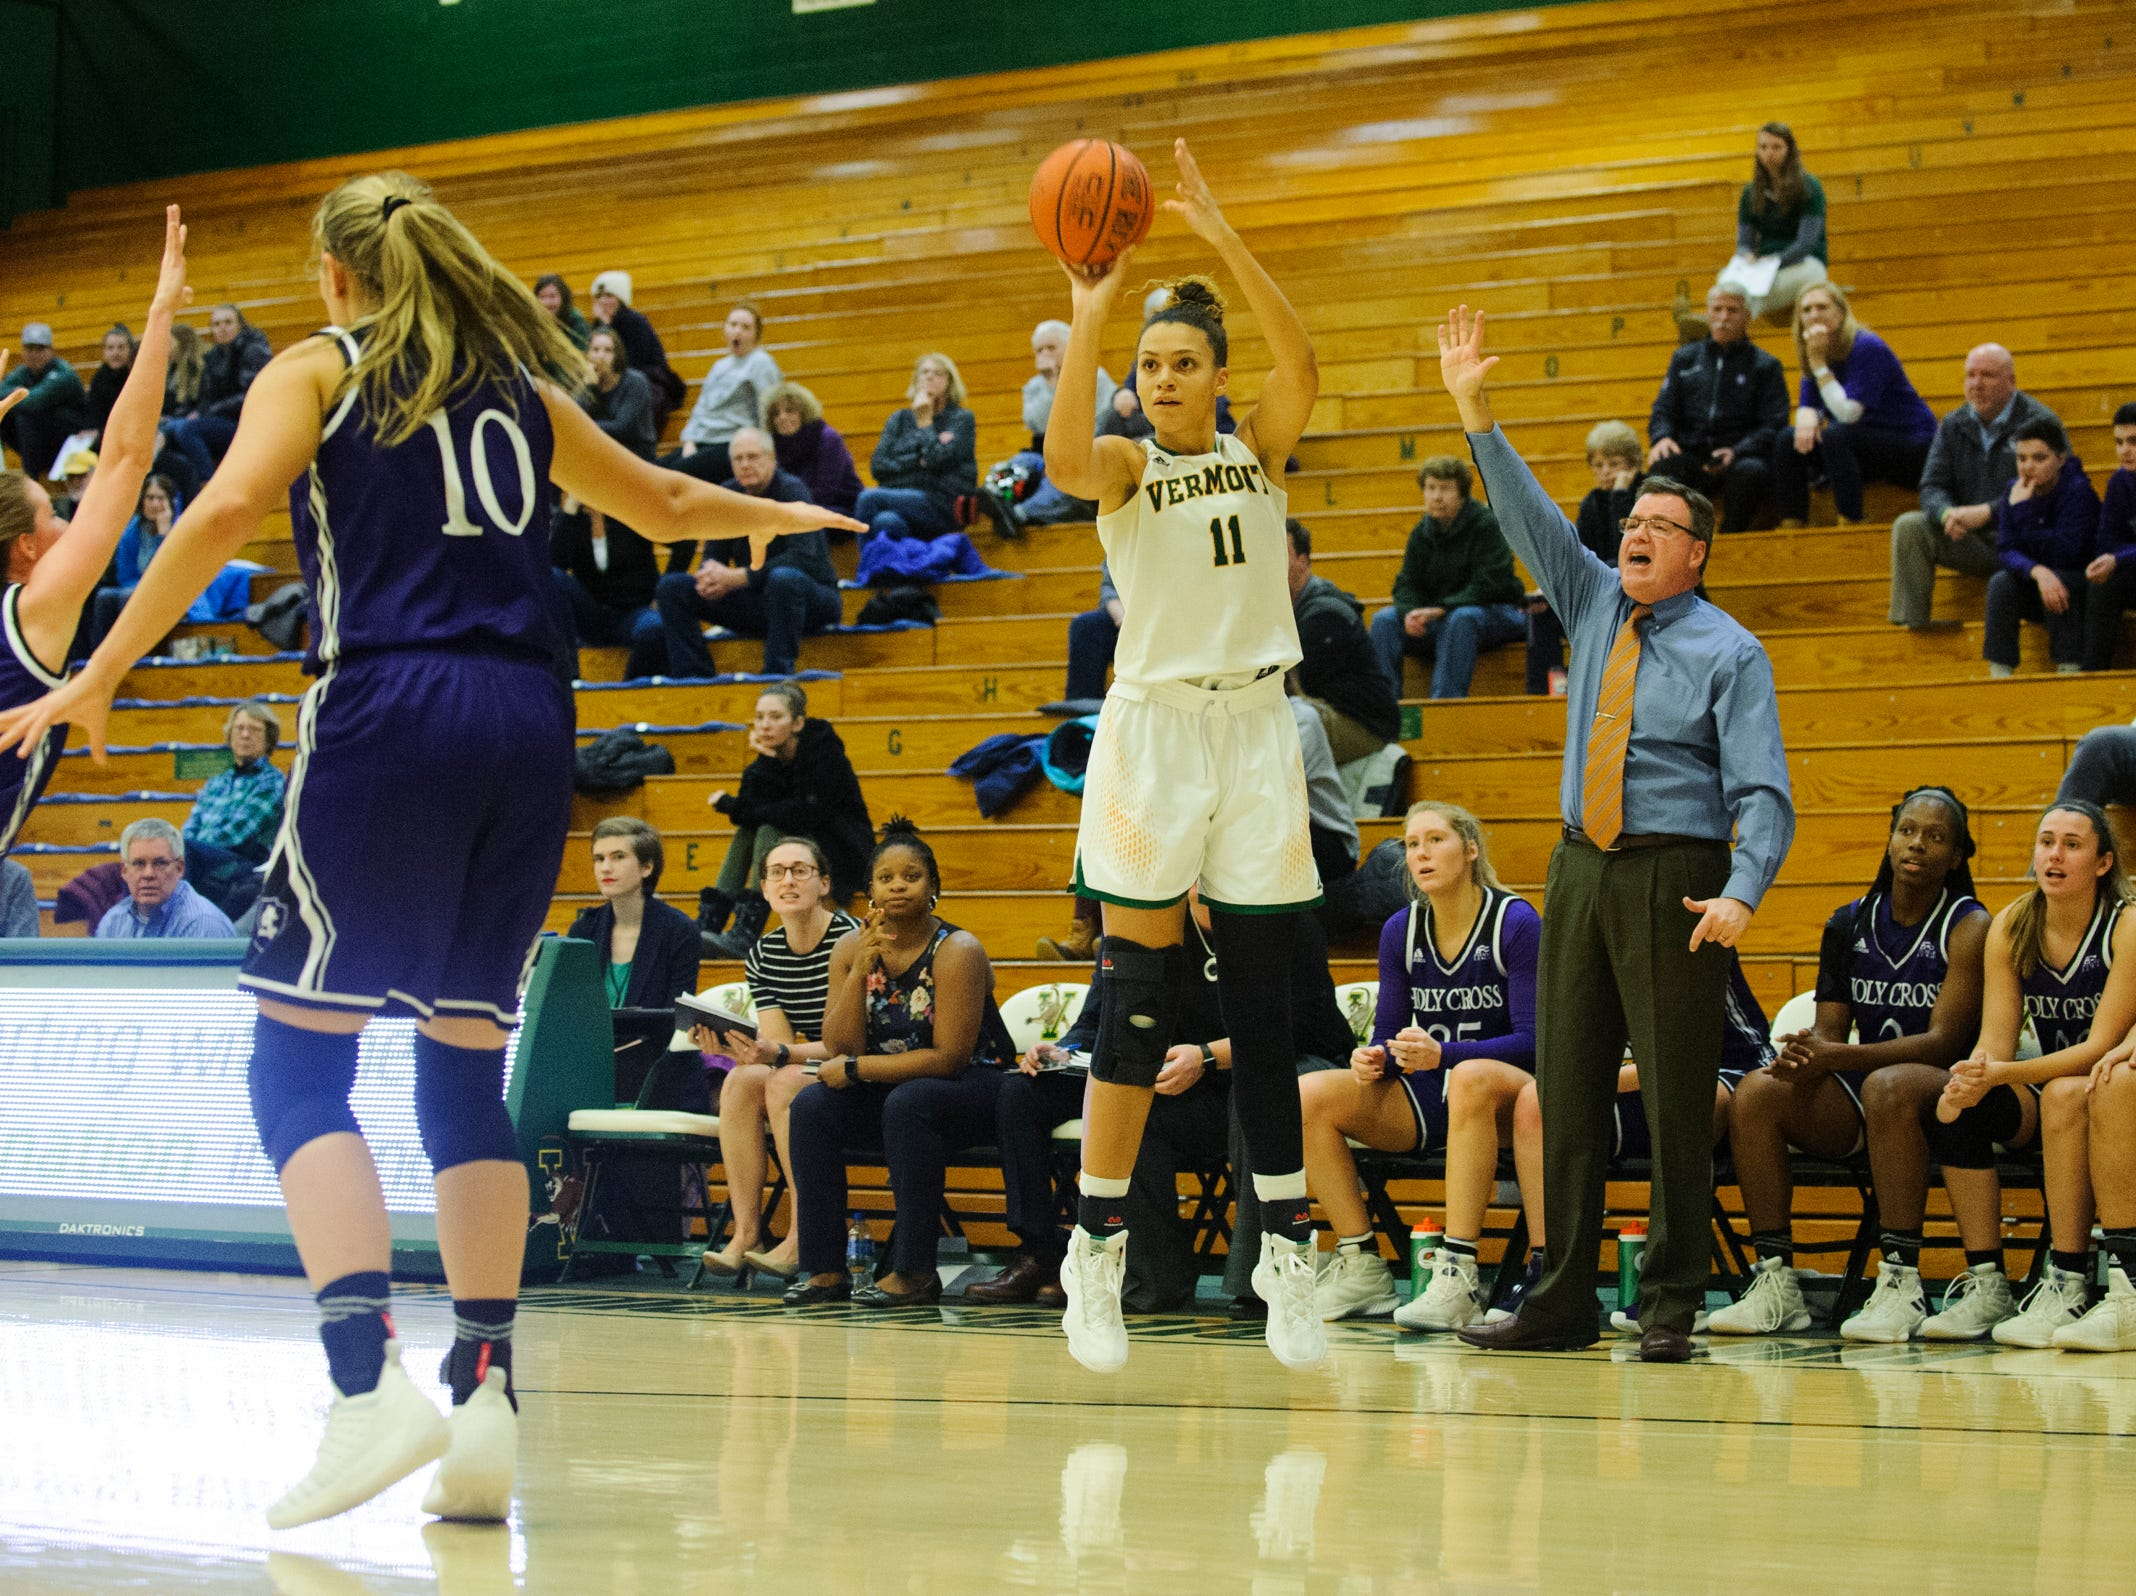 Vermont's Candice Wright (11) shoots a three pointer during the women's basketball game between the Holy Cross Crusaders and the Vermont Catamounts at Patrick Gym on Wednesday night November 28, 2018 in Burlington.